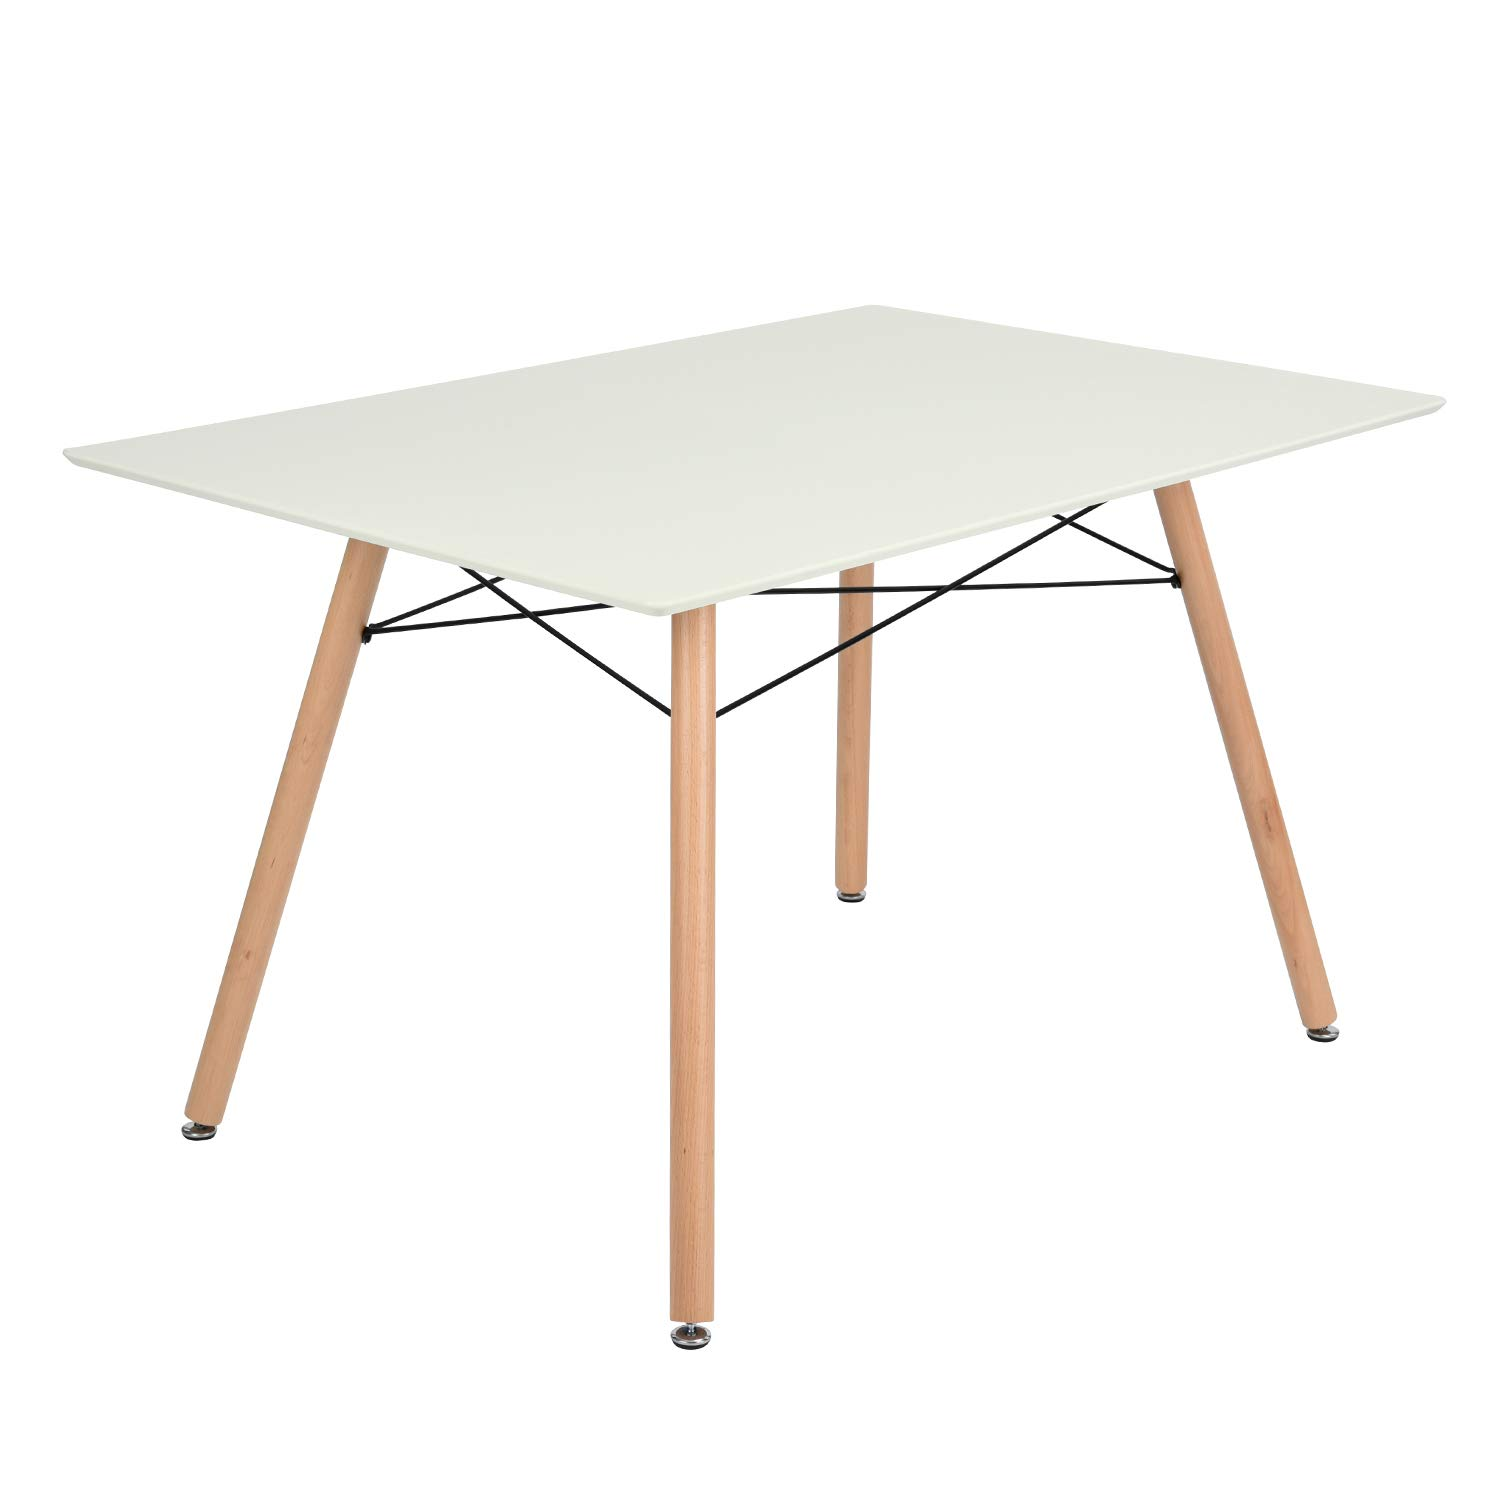 GOLDFAN Glass Dining Table Eiffel Modern Wood Style for Kitchen Table Rectangle Dining Room Table 120 x 70 x 7 5 cm Table Only